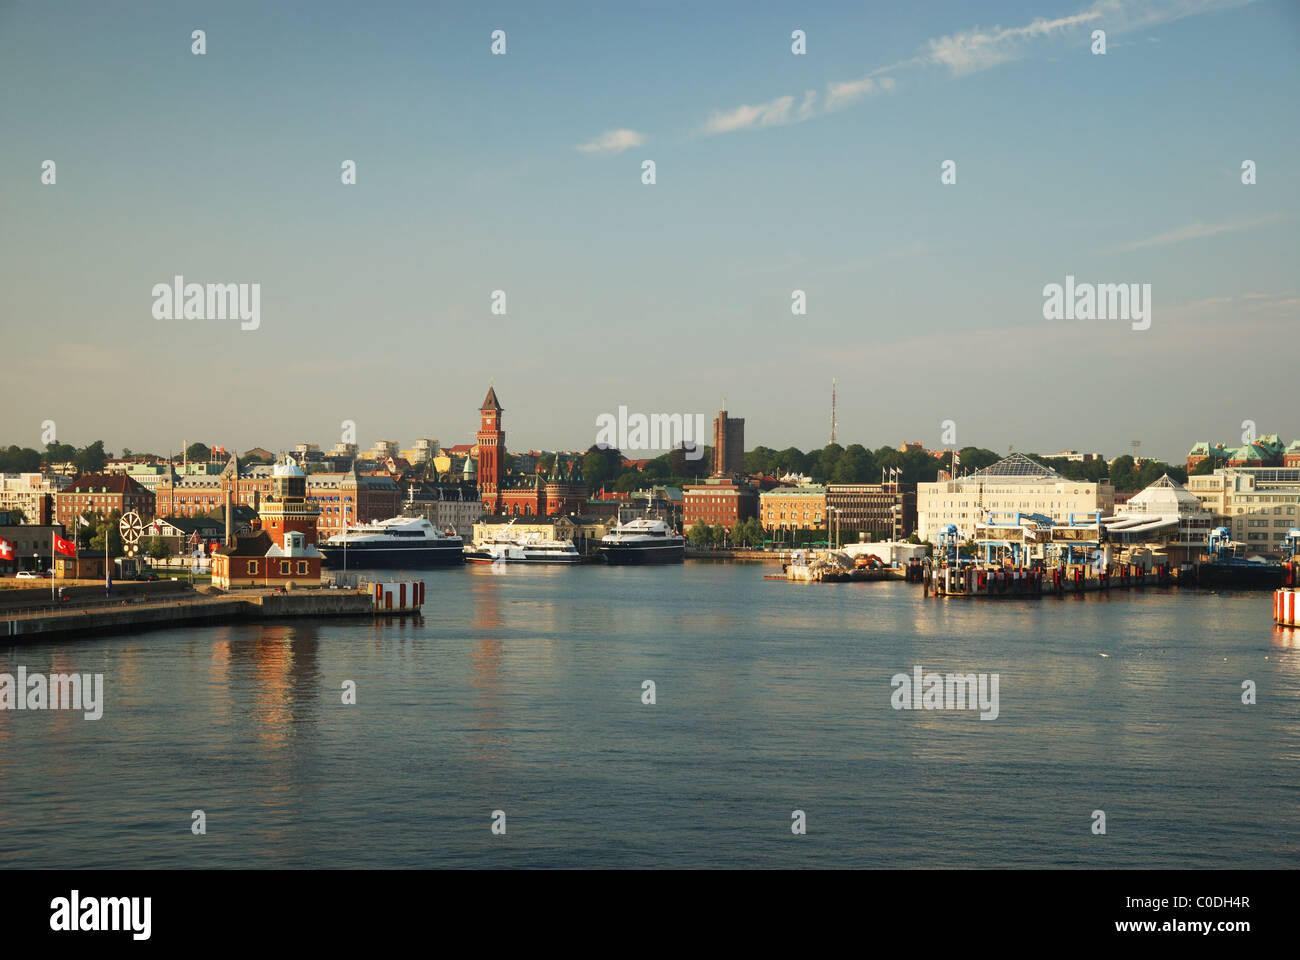 Sweden city Helsingborg is situated near the Kattegat sea. - Stock Image